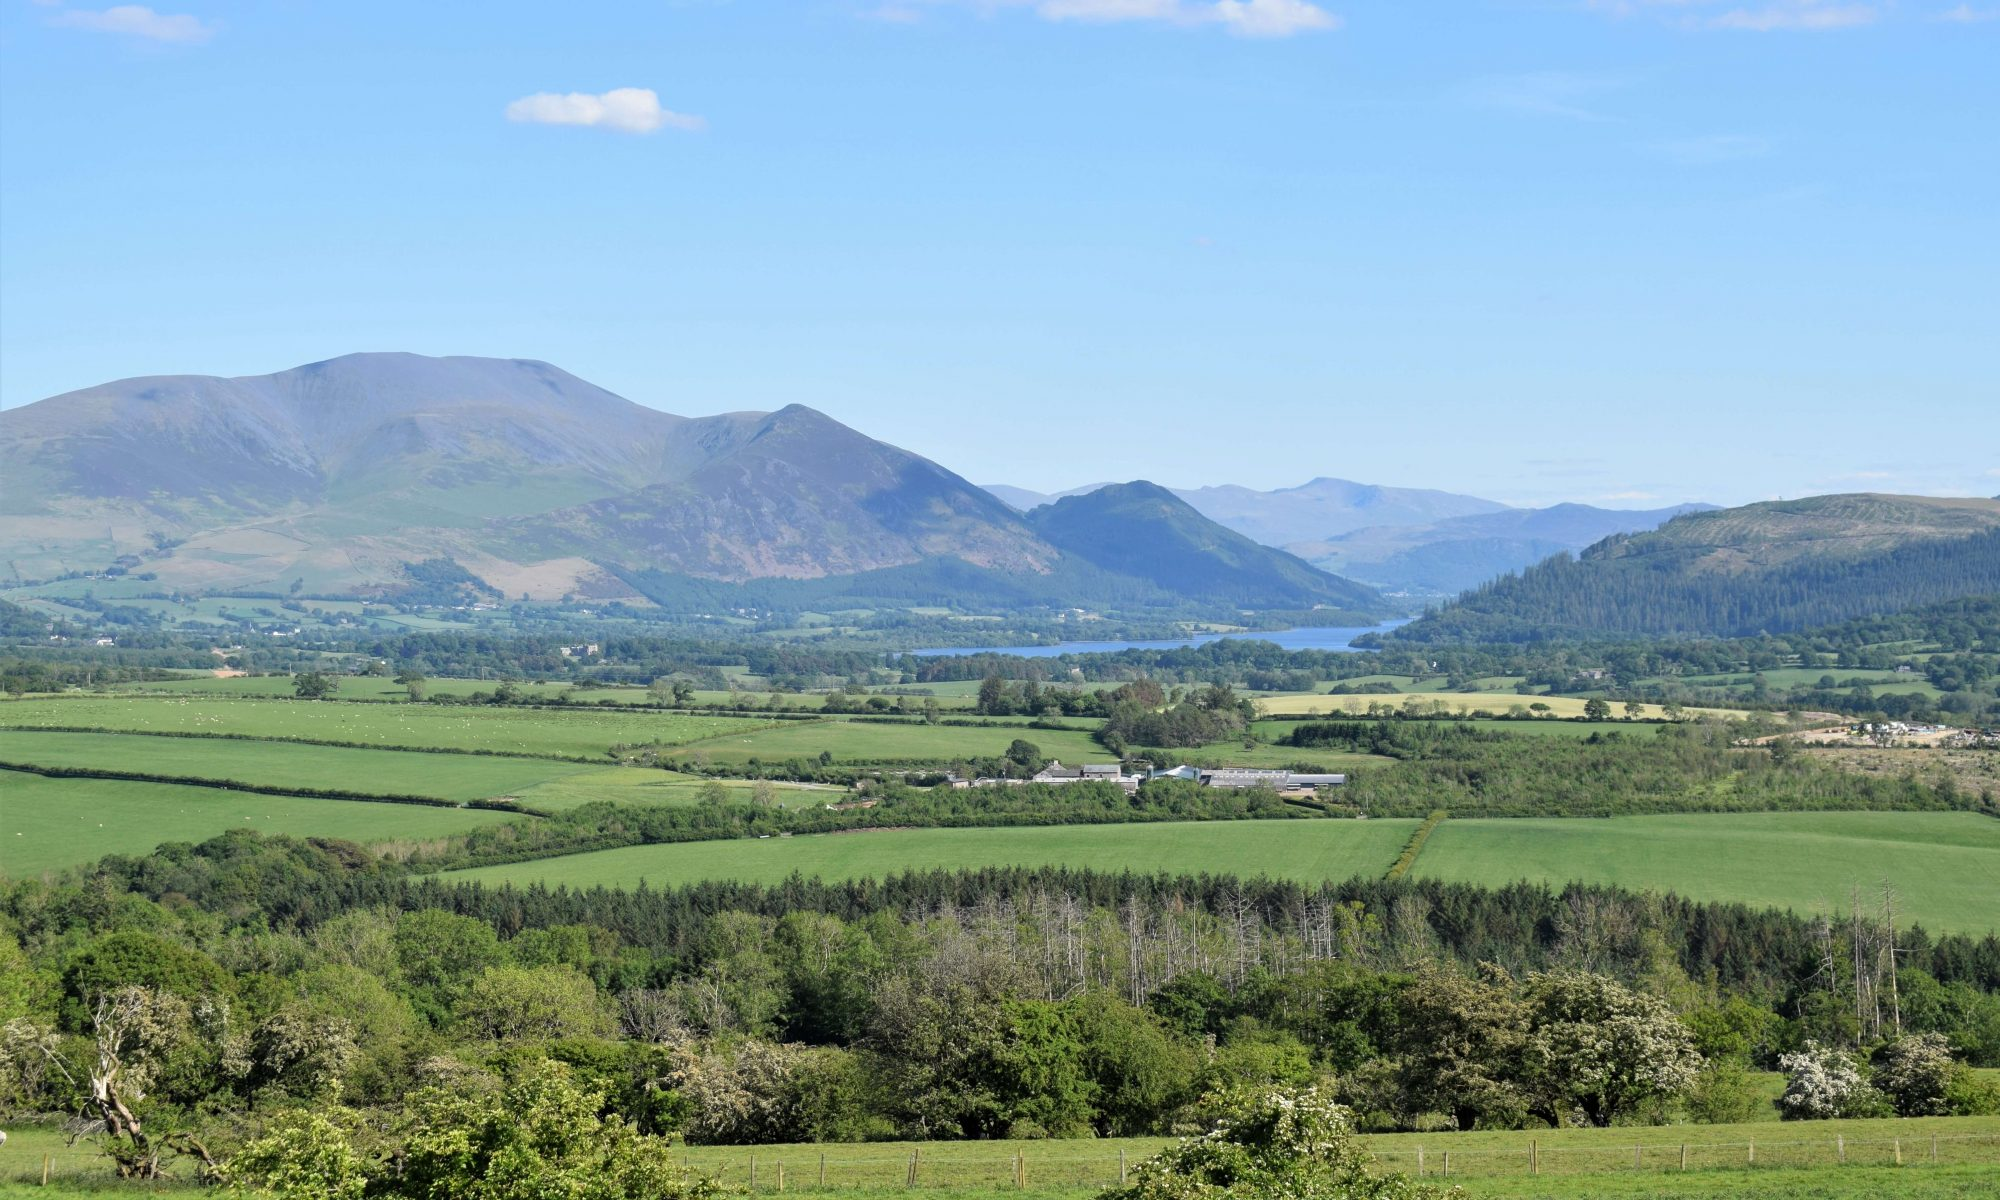 Wonderful views from Clints Crags towards Skiddaw and Bassenthwaite Lake